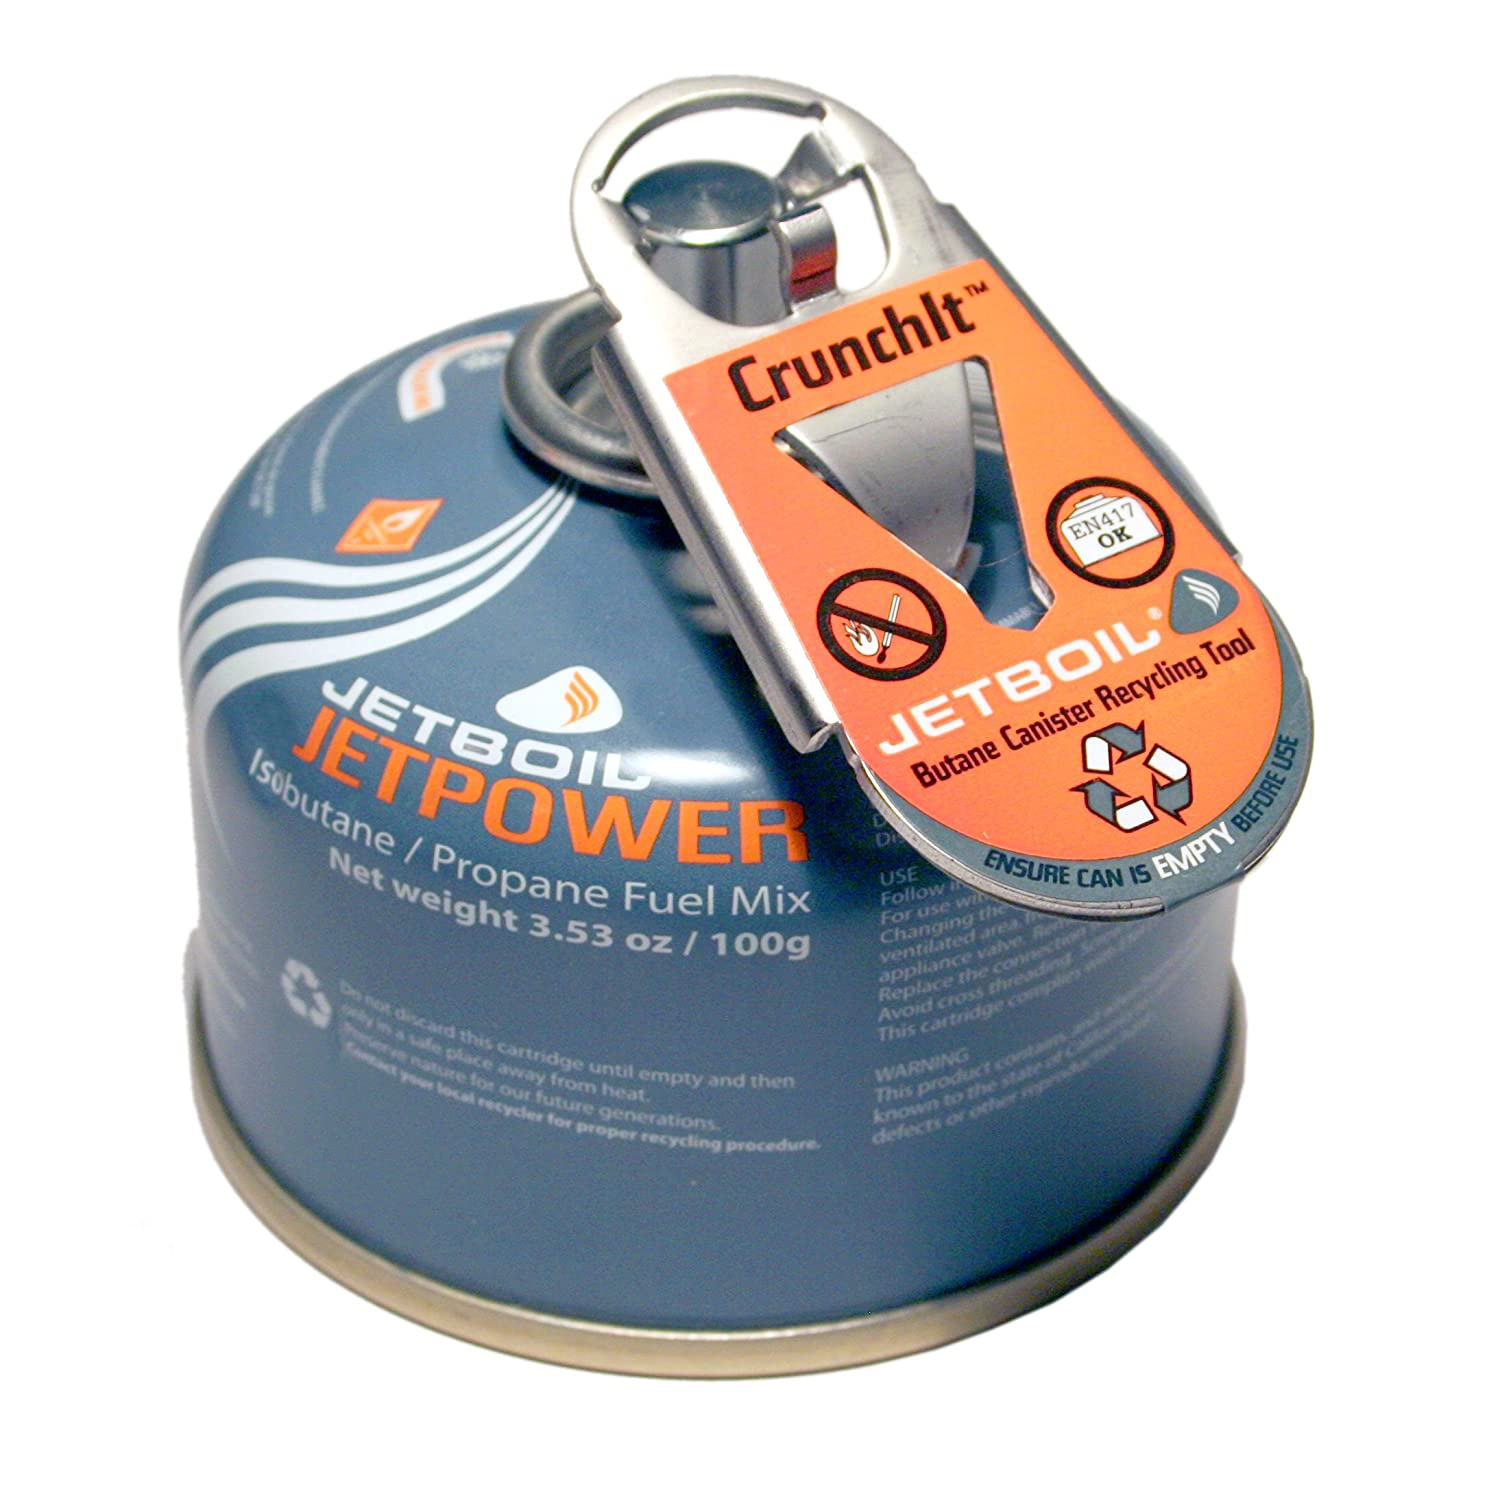 Punctures Fuel Canisters For Recycling made our CampingForFoodies hand-selected list of 100+ Camping Stocking Stuffers For RV And Tent Campers!